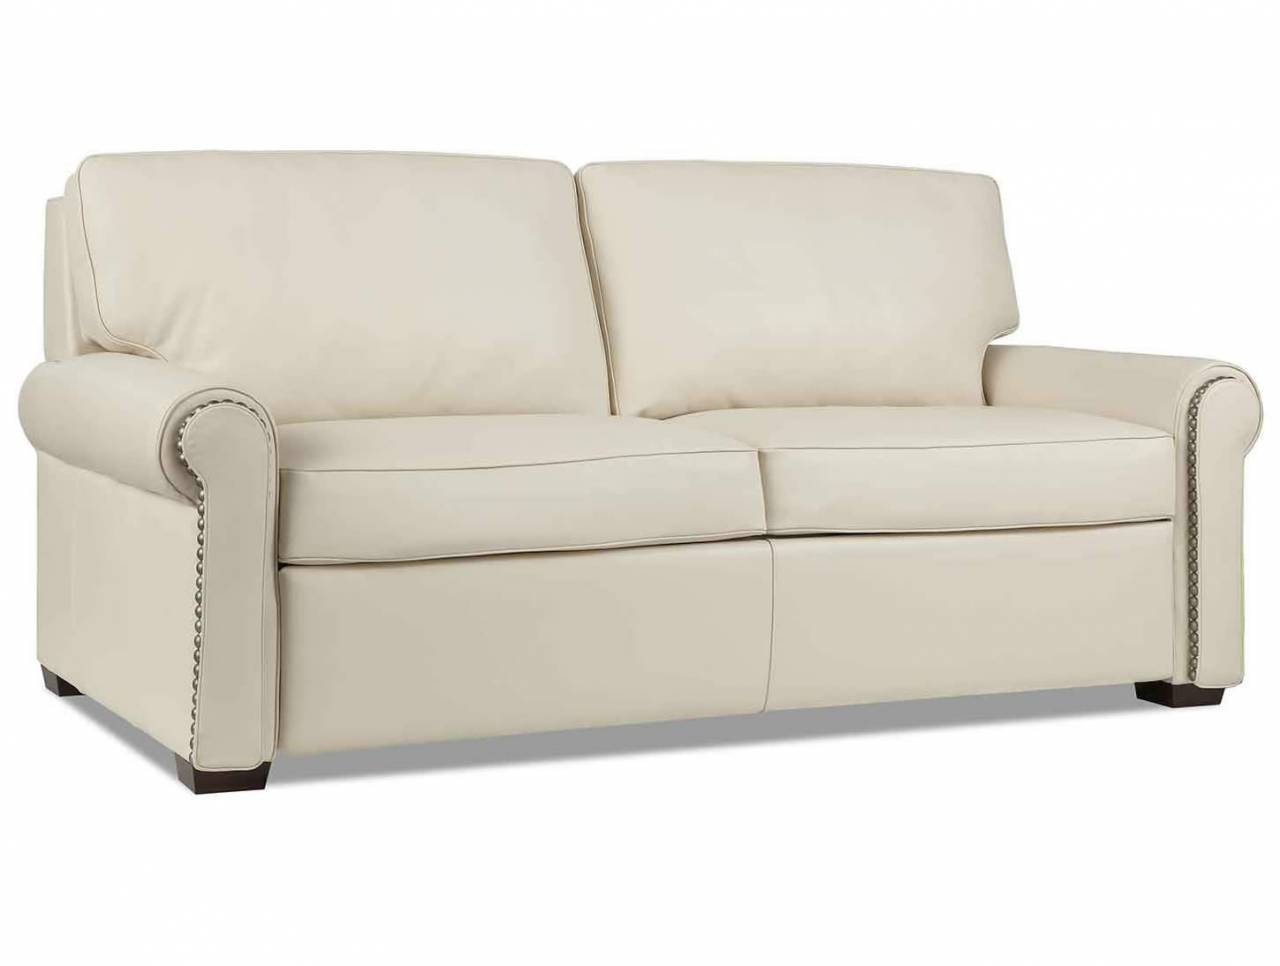 Reese Sleeper Sofa - Sofas & Chairs Of Minnesota intended for Comfort Sleeper Sofas (Image 22 of 30)